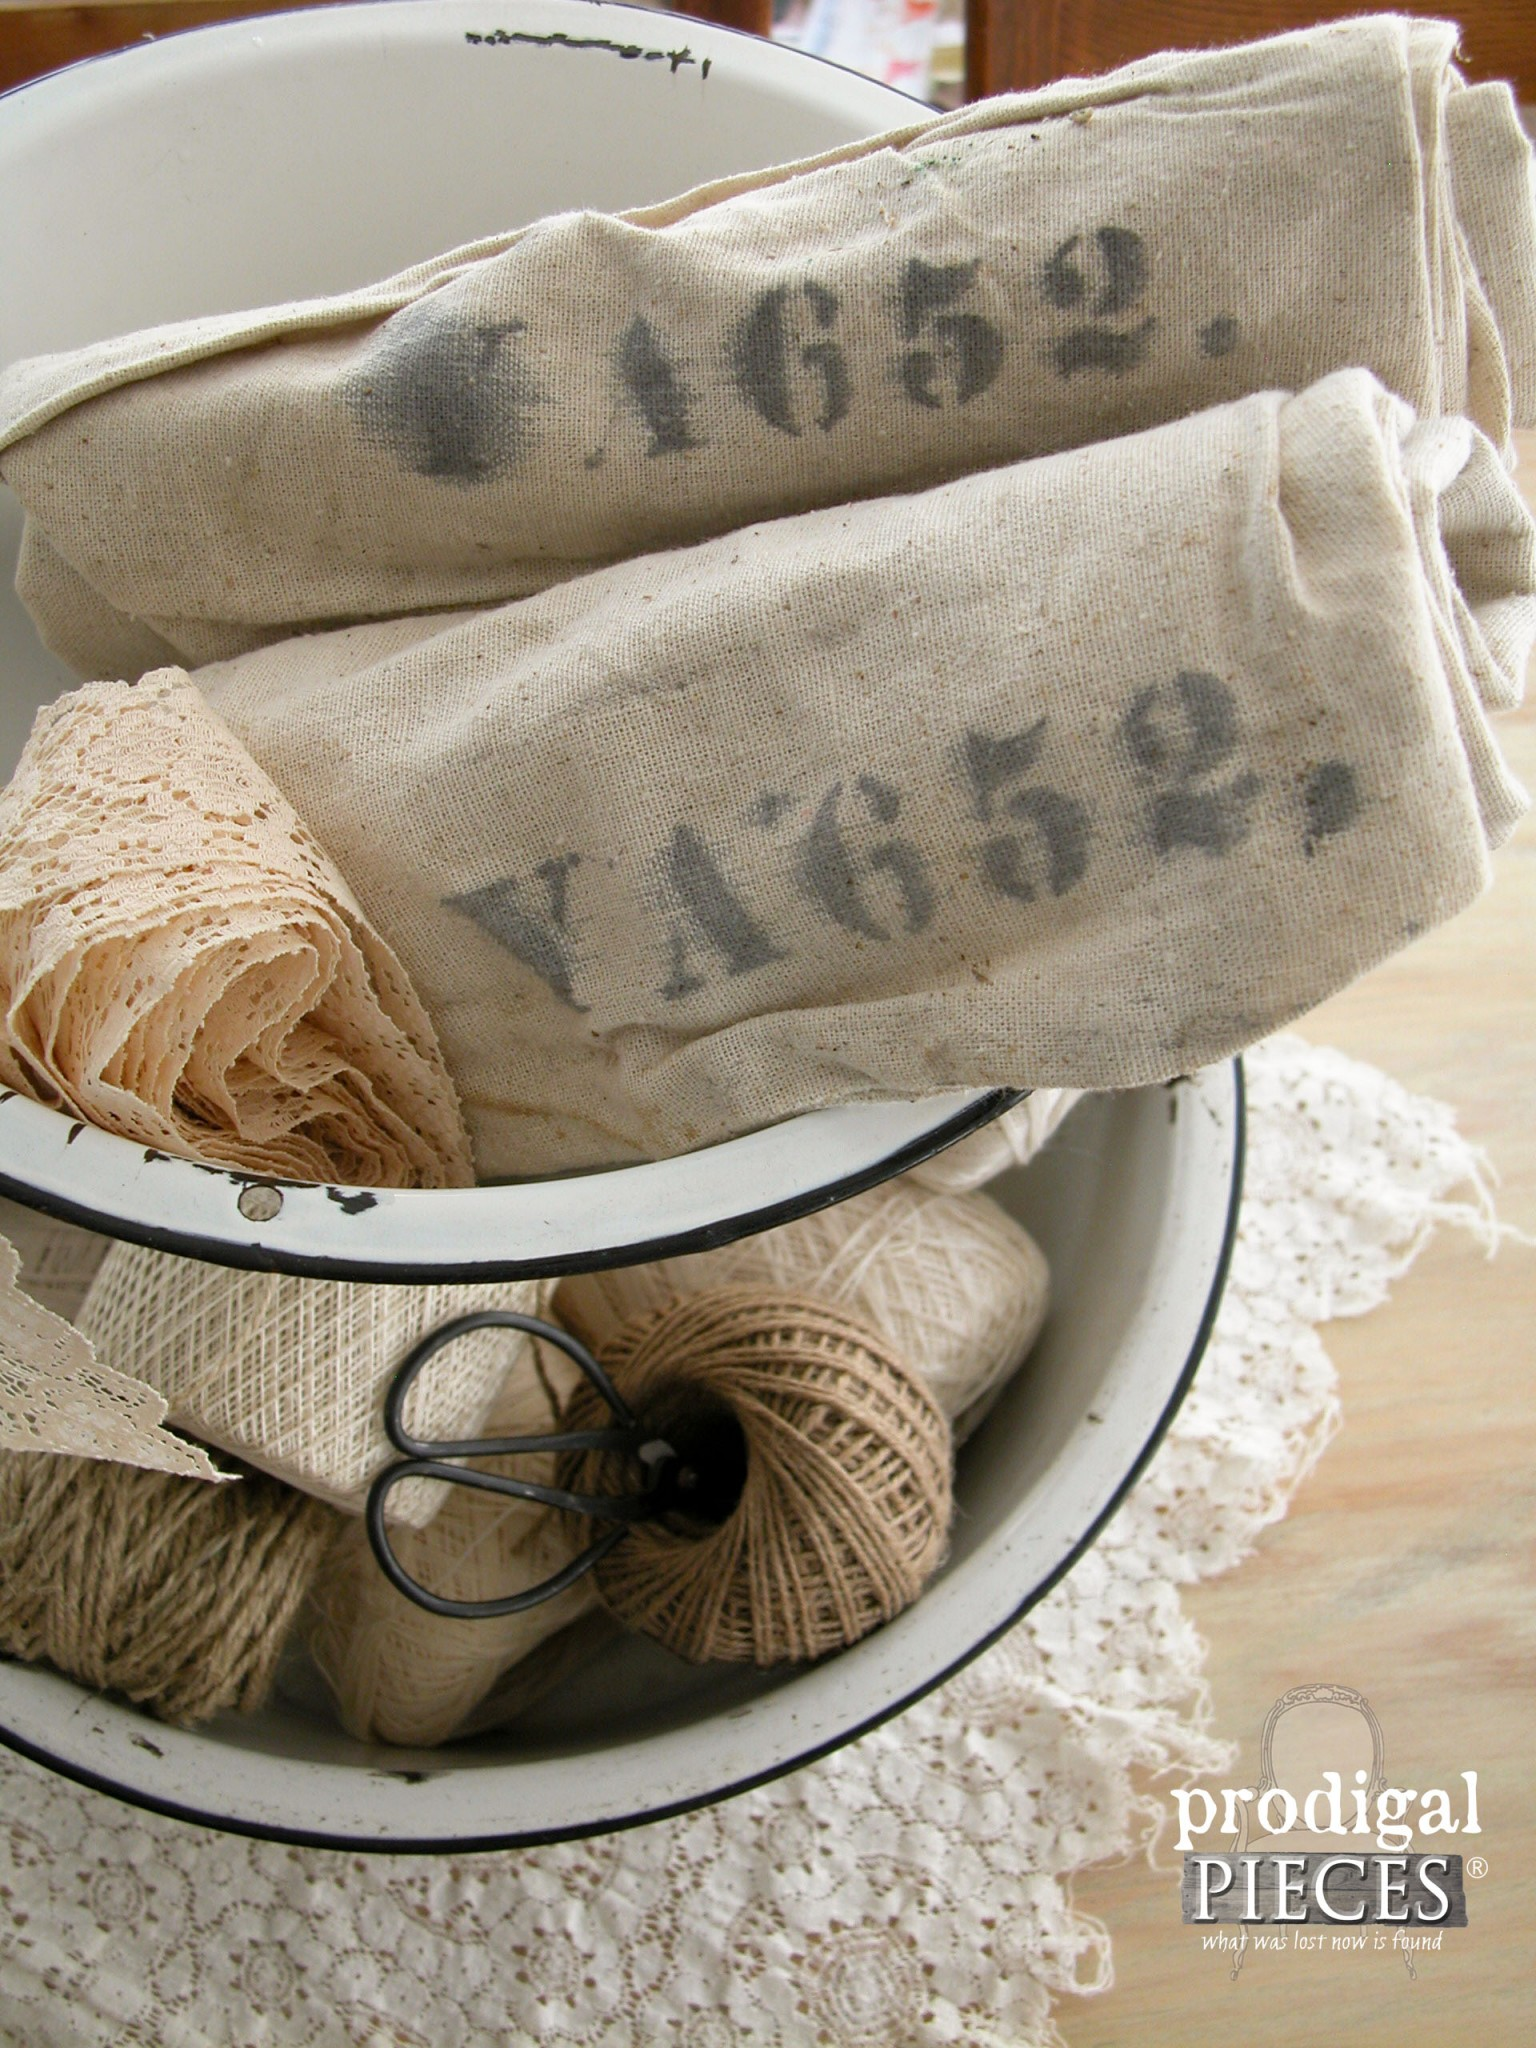 Vintage Flea Market Feed Sacks | Prodigal Pieces | www.prodigalpieces.com